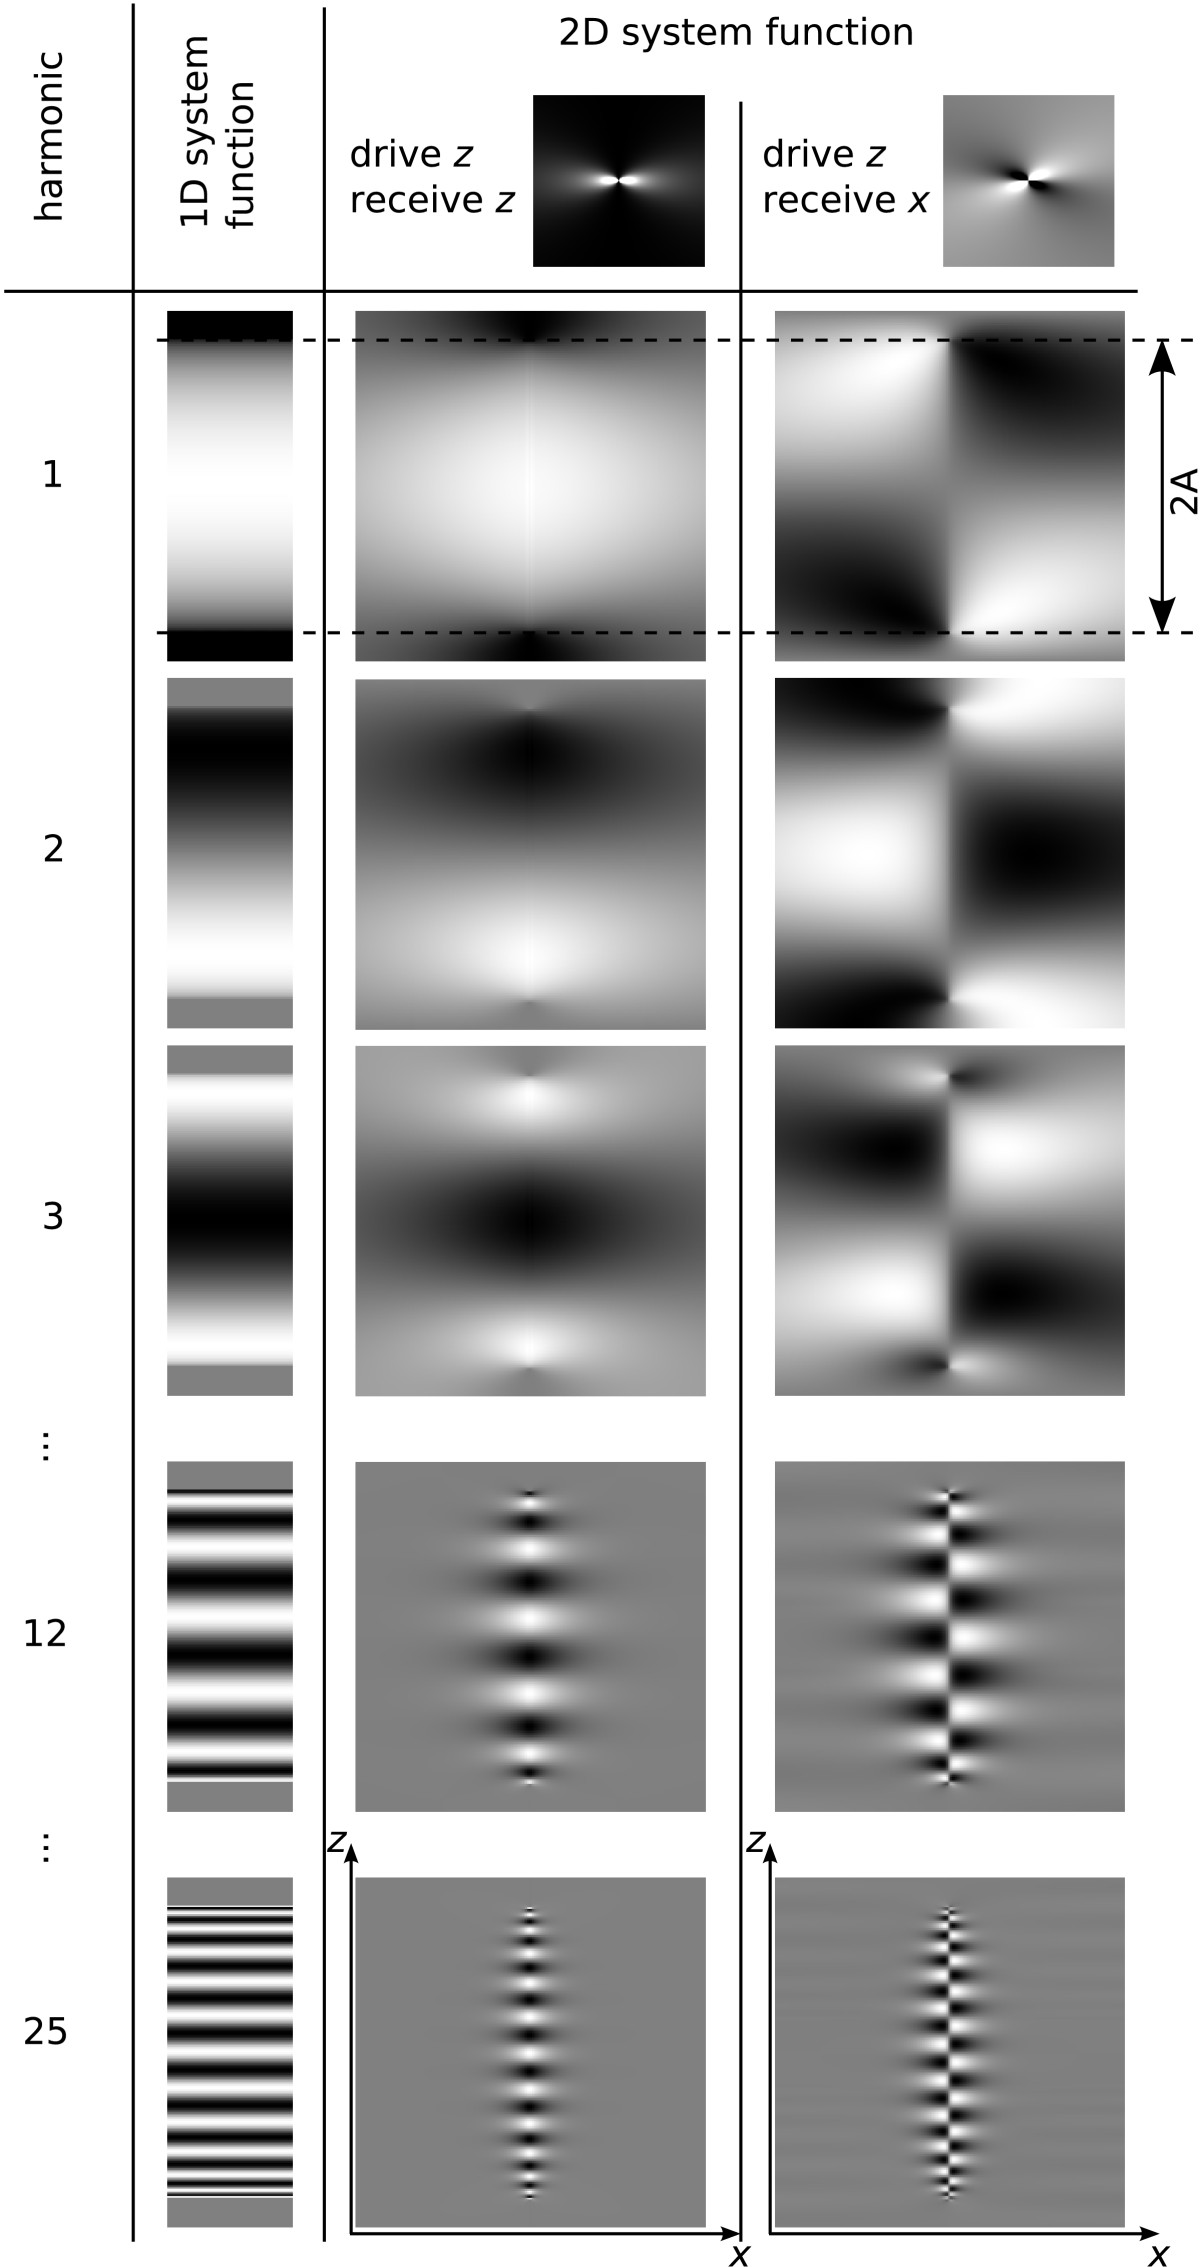 http://static-content.springer.com/image/art%3A10.1186%2F1471-2342-9-4/MediaObjects/12880_2008_Article_62_Fig7_HTML.jpg